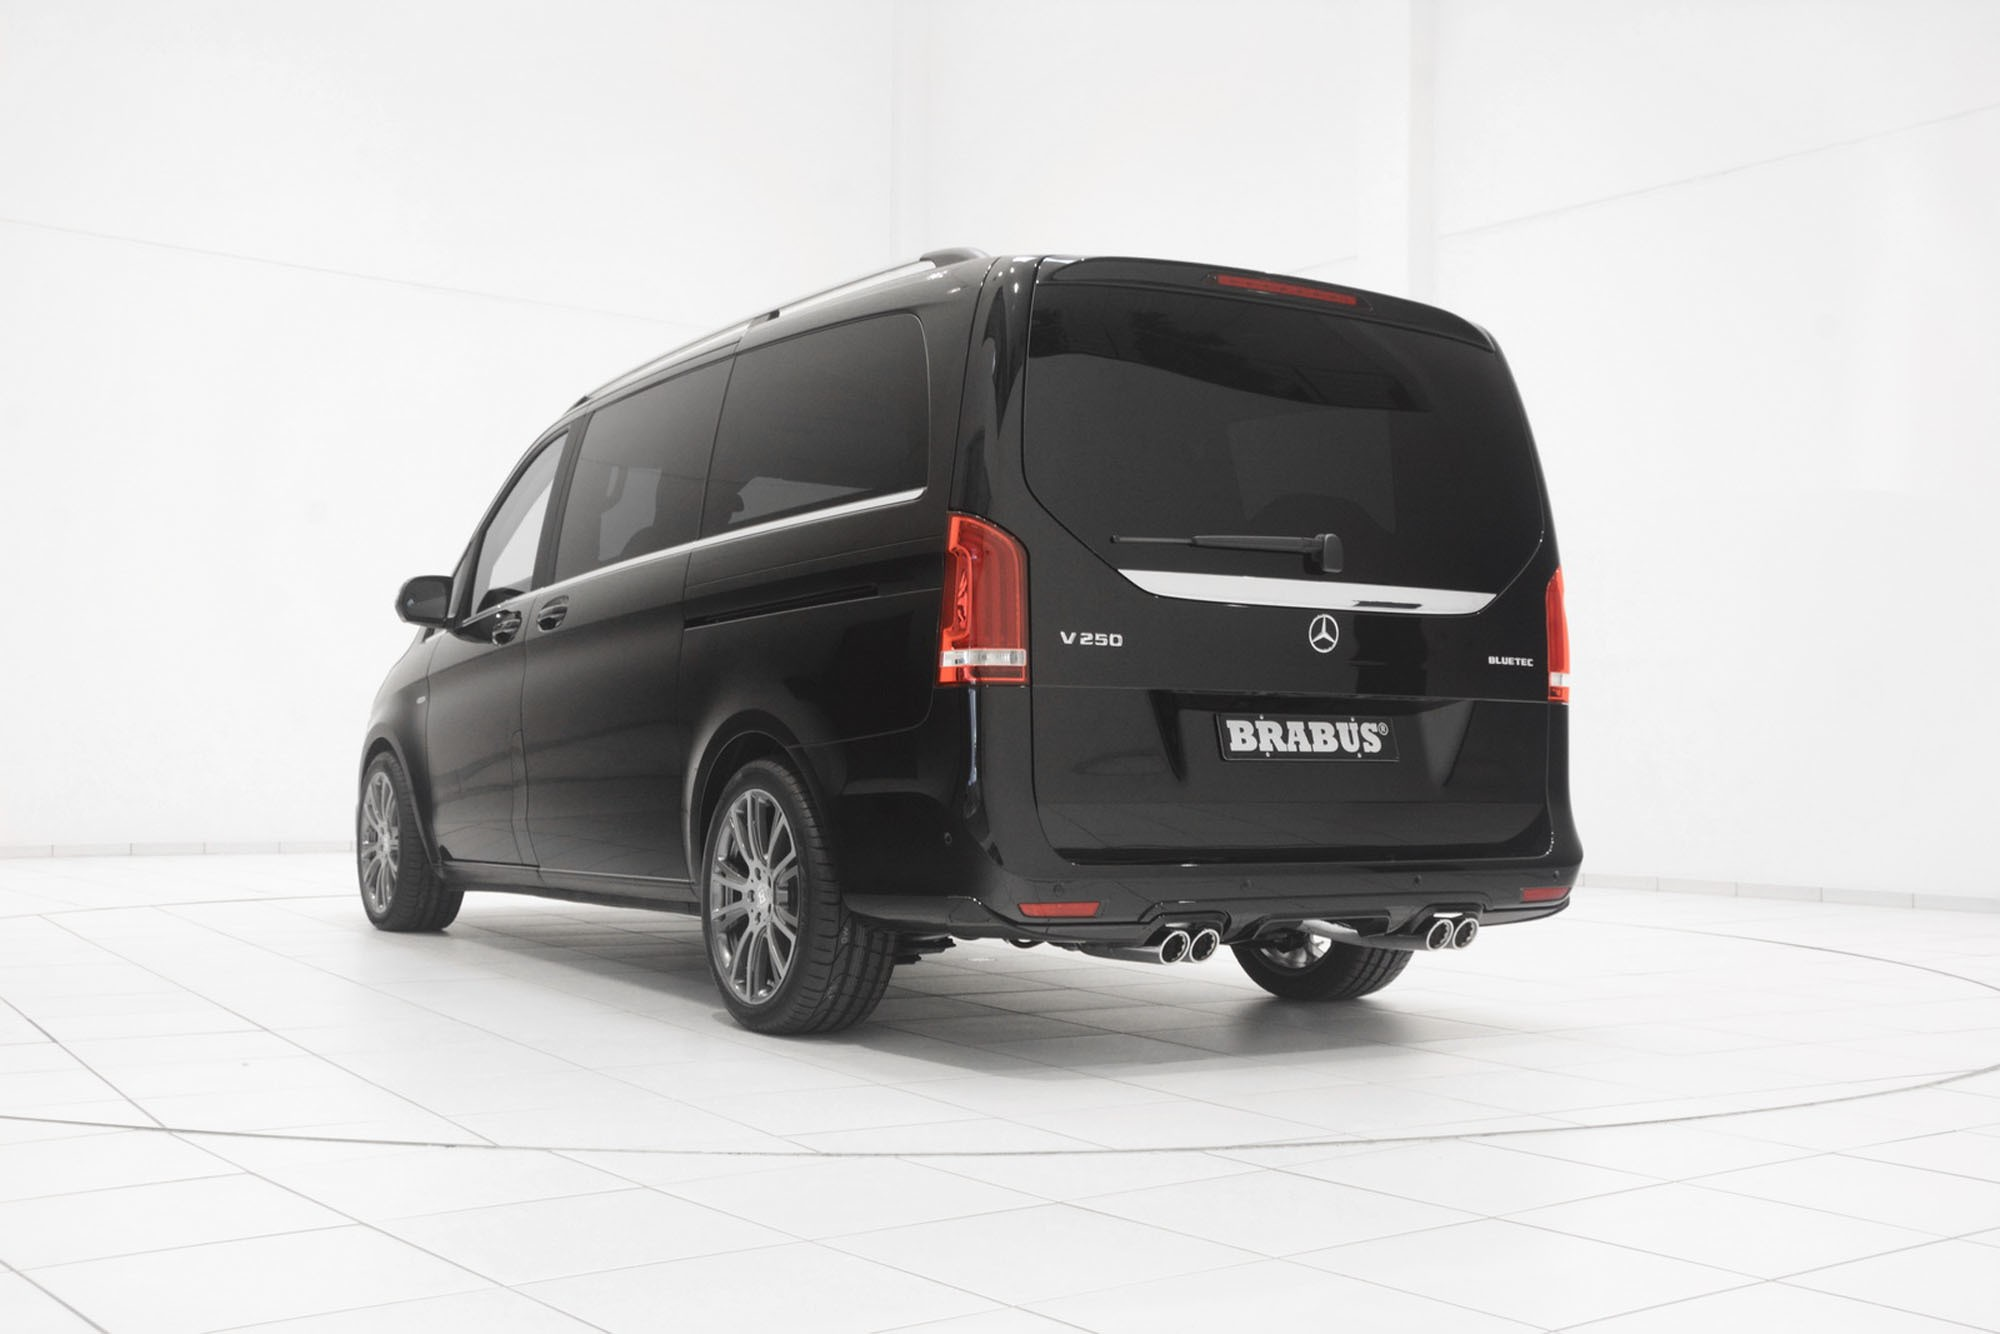 mercedes benz v class wins top shelf assets from brabus. Black Bedroom Furniture Sets. Home Design Ideas